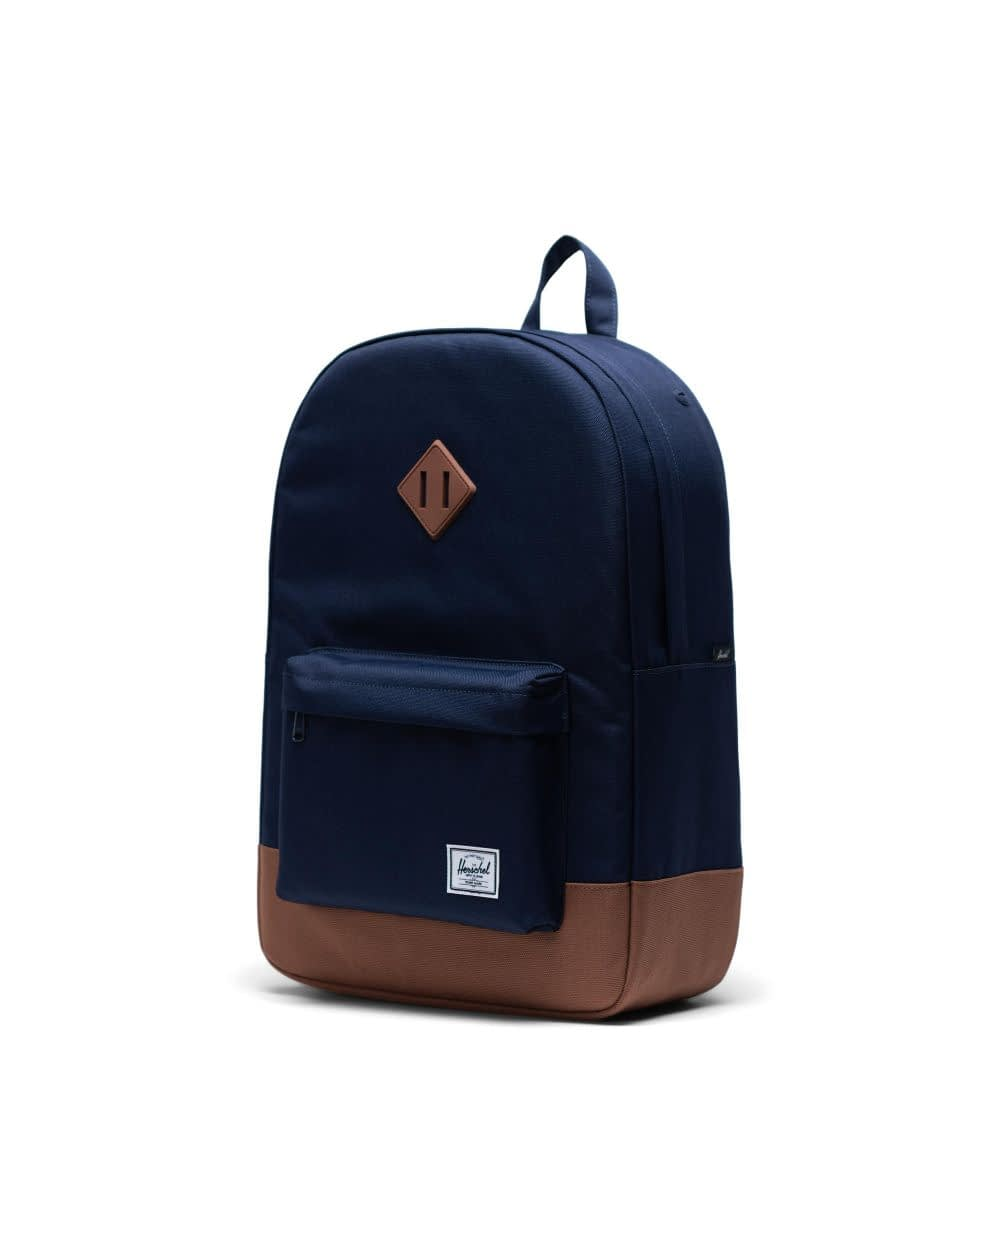 Heritage backpack in navy blue and tan